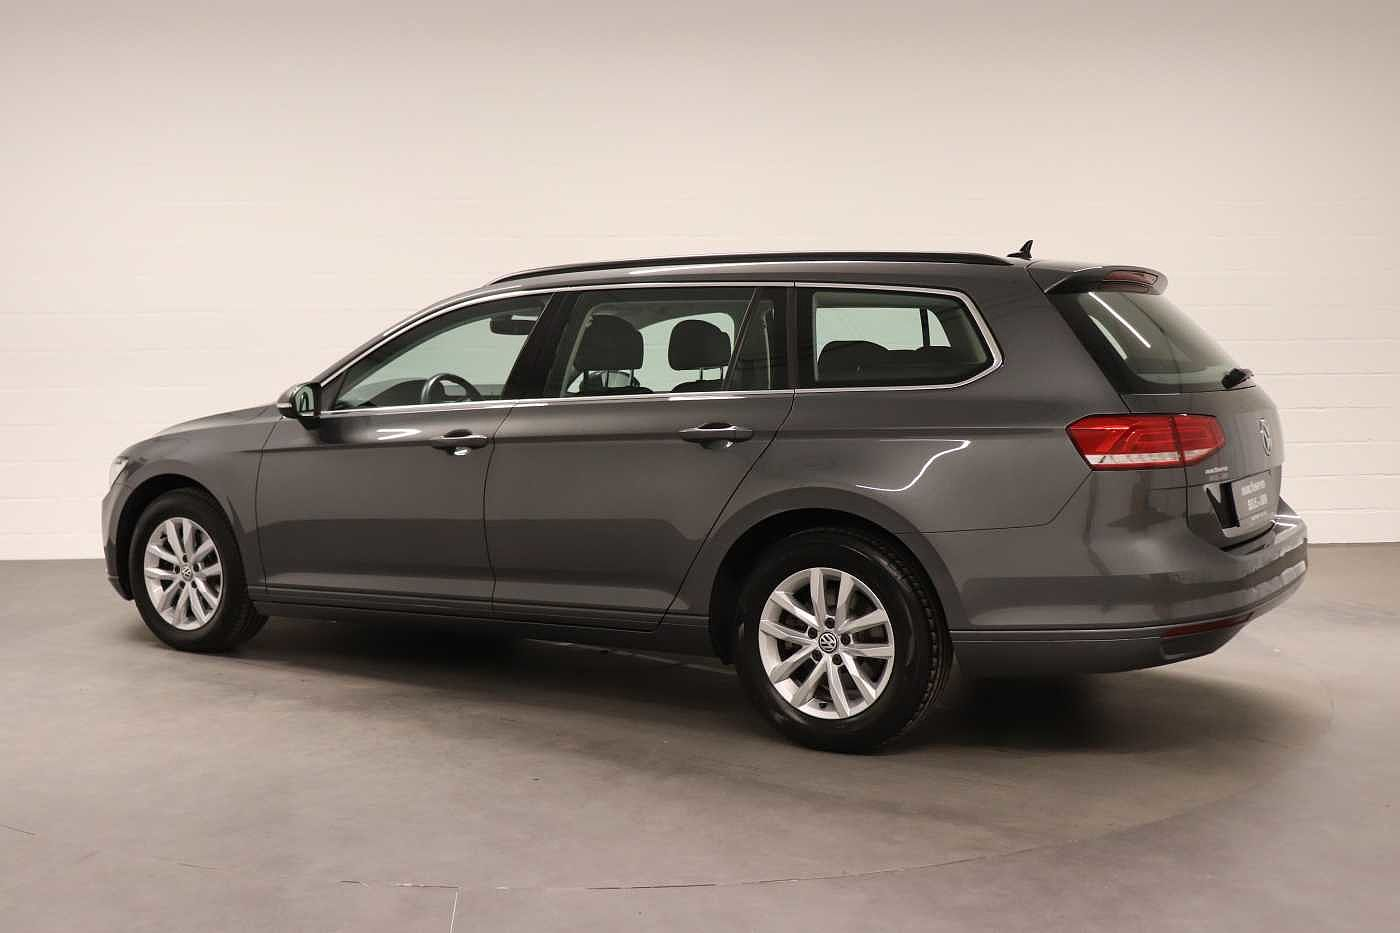 Volkswagen Passat 1.6Tdi - photo 10